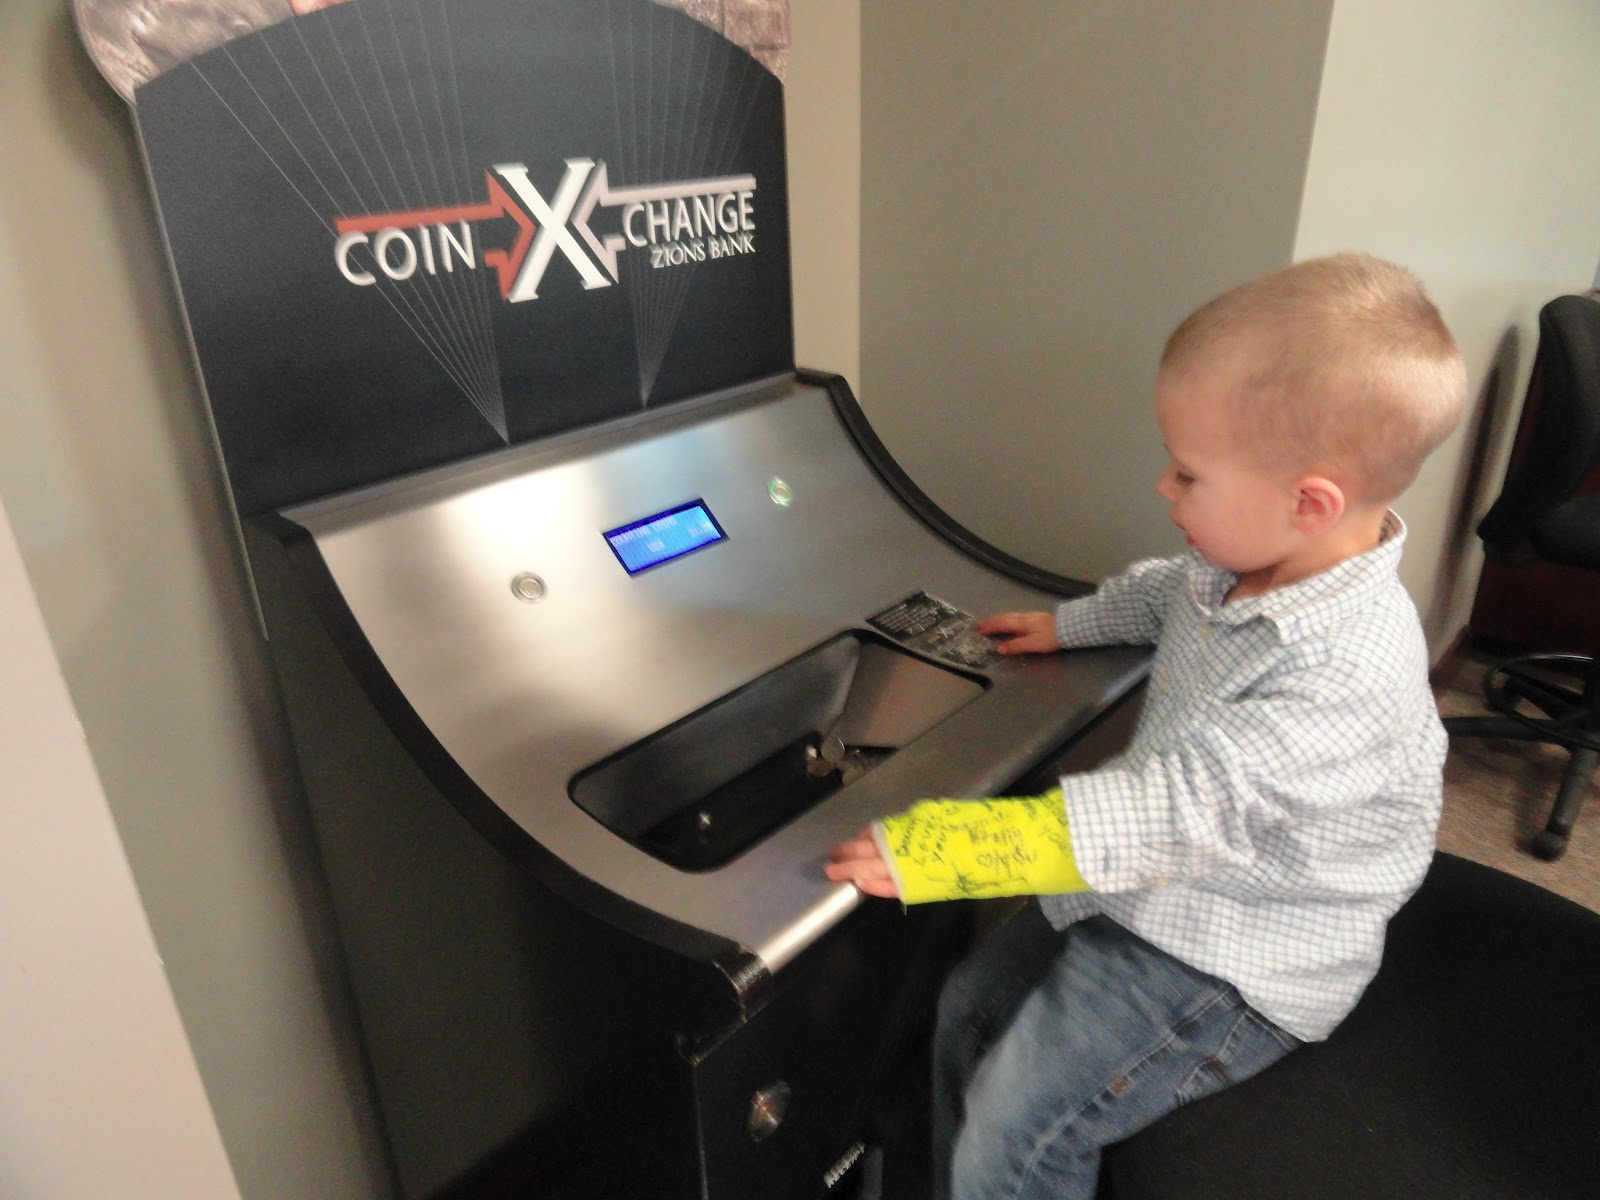 do banks have coin counters